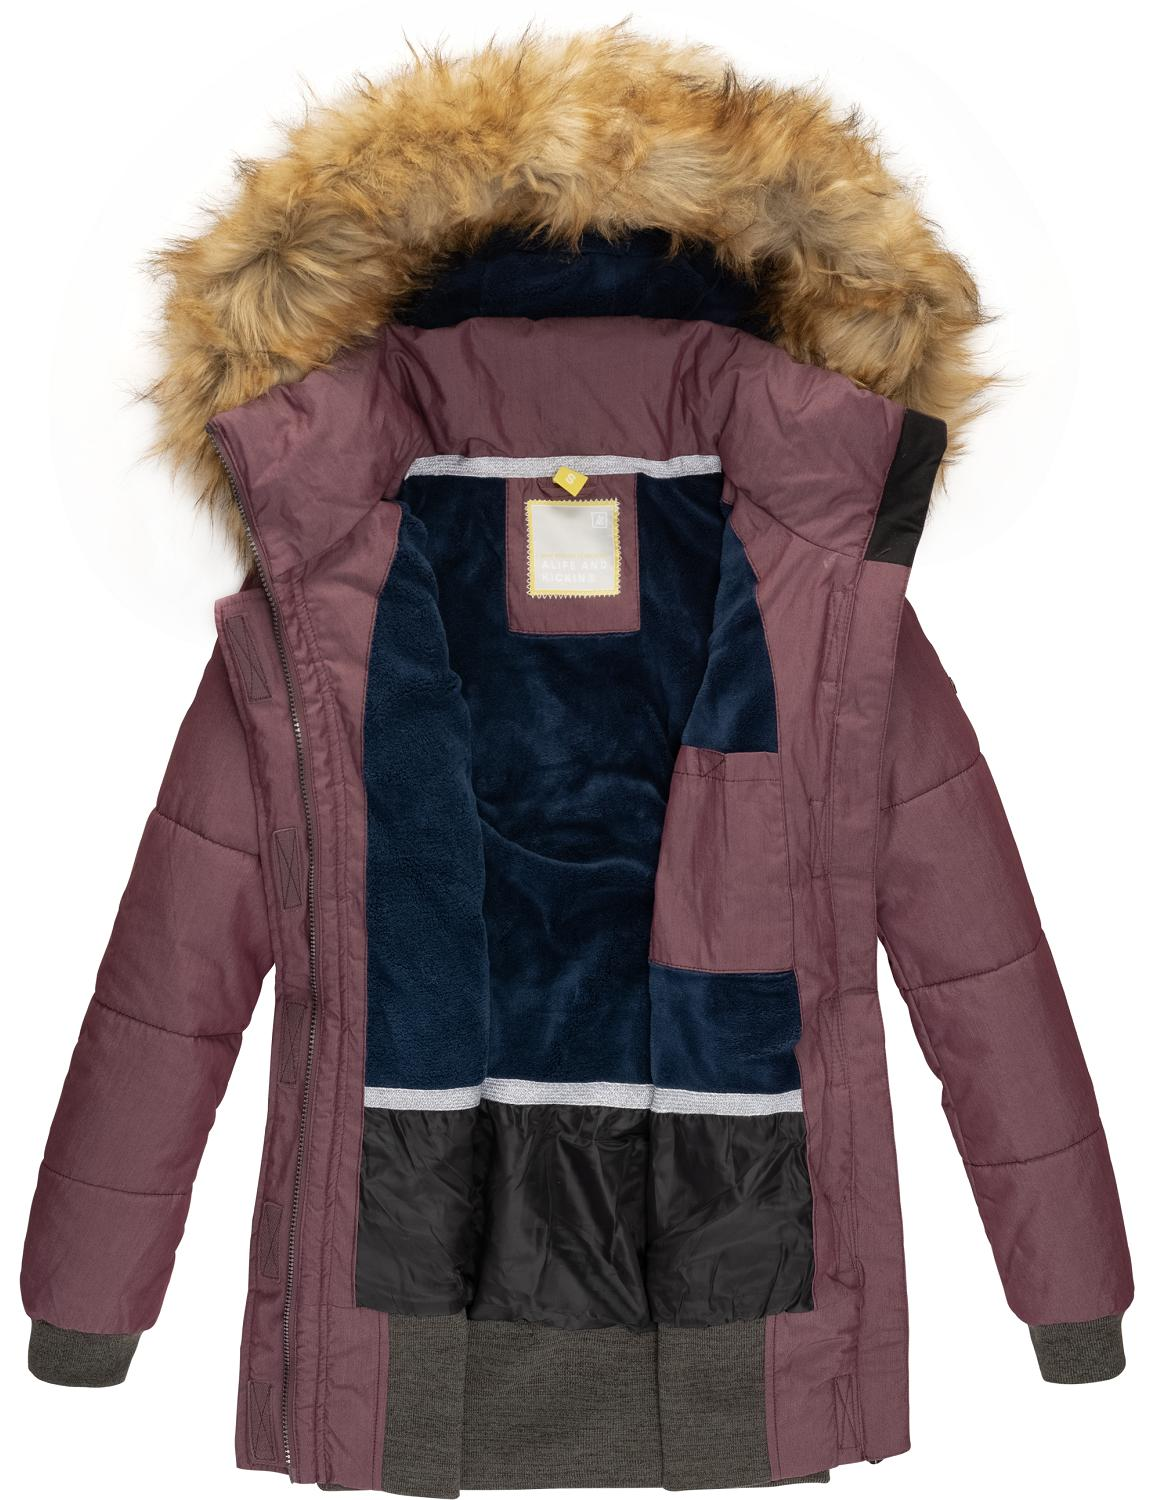 Alife and kickin Winterjacke Alva in Violett günstig kaufen